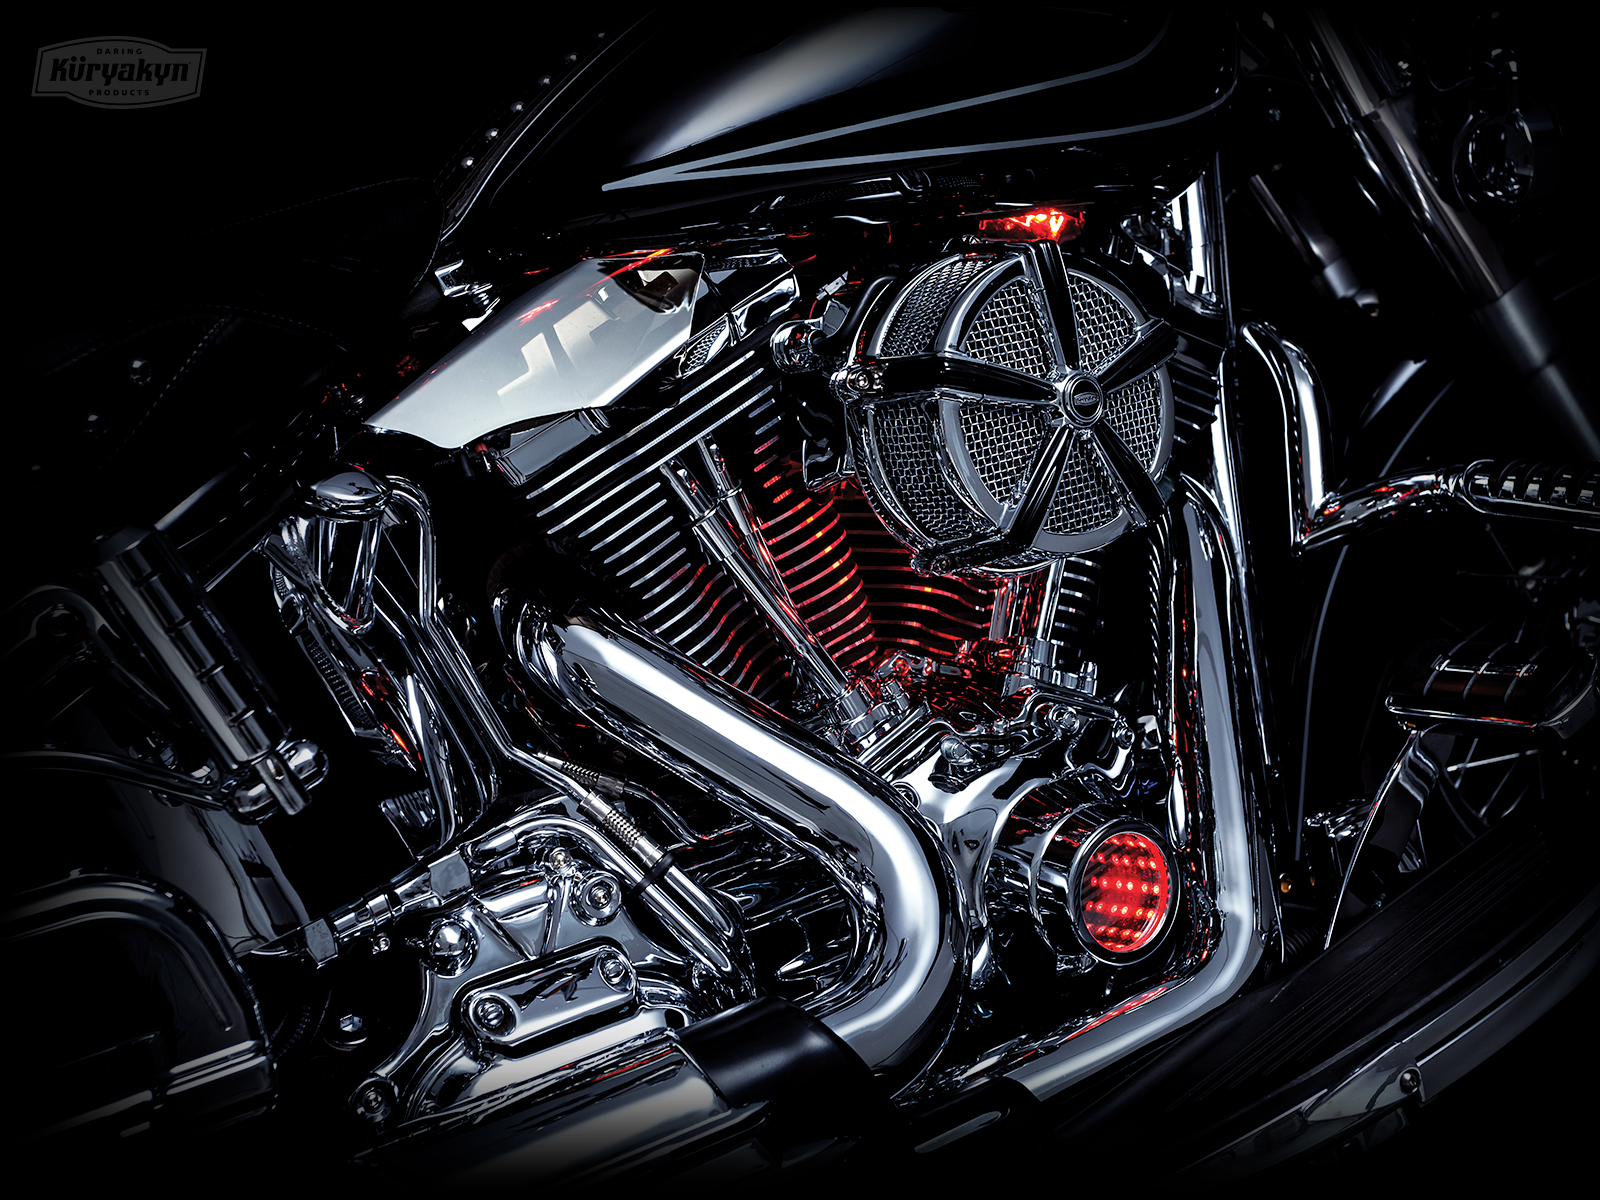 Car Auto Parts: Motorcycle Parts And Accessories For Harley